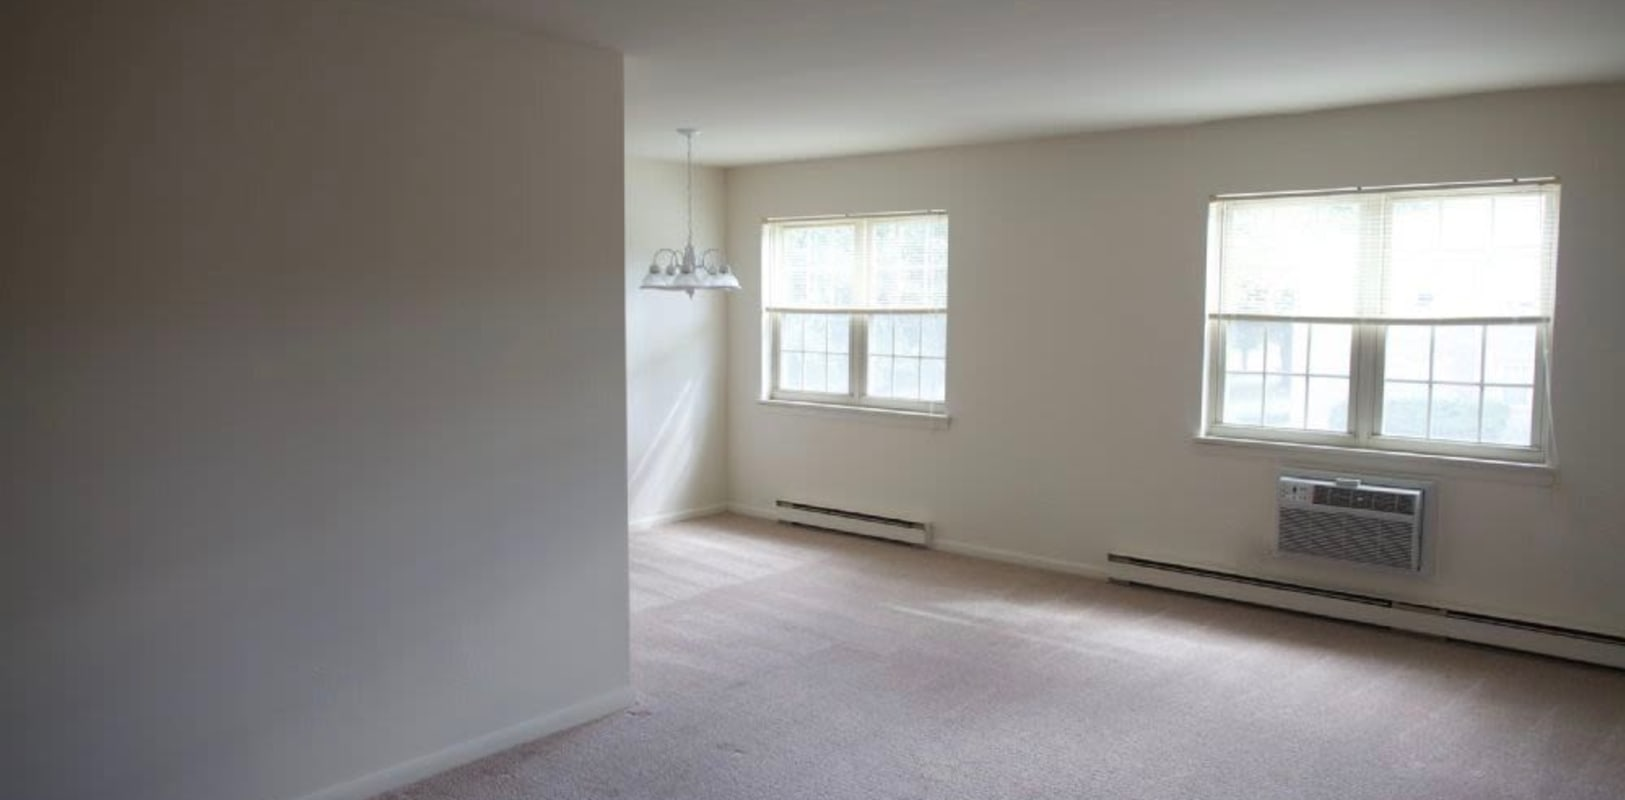 Large carpeted living room with lots of natural light at Sharon Arms Apartments in Robbinsville, New Jersey